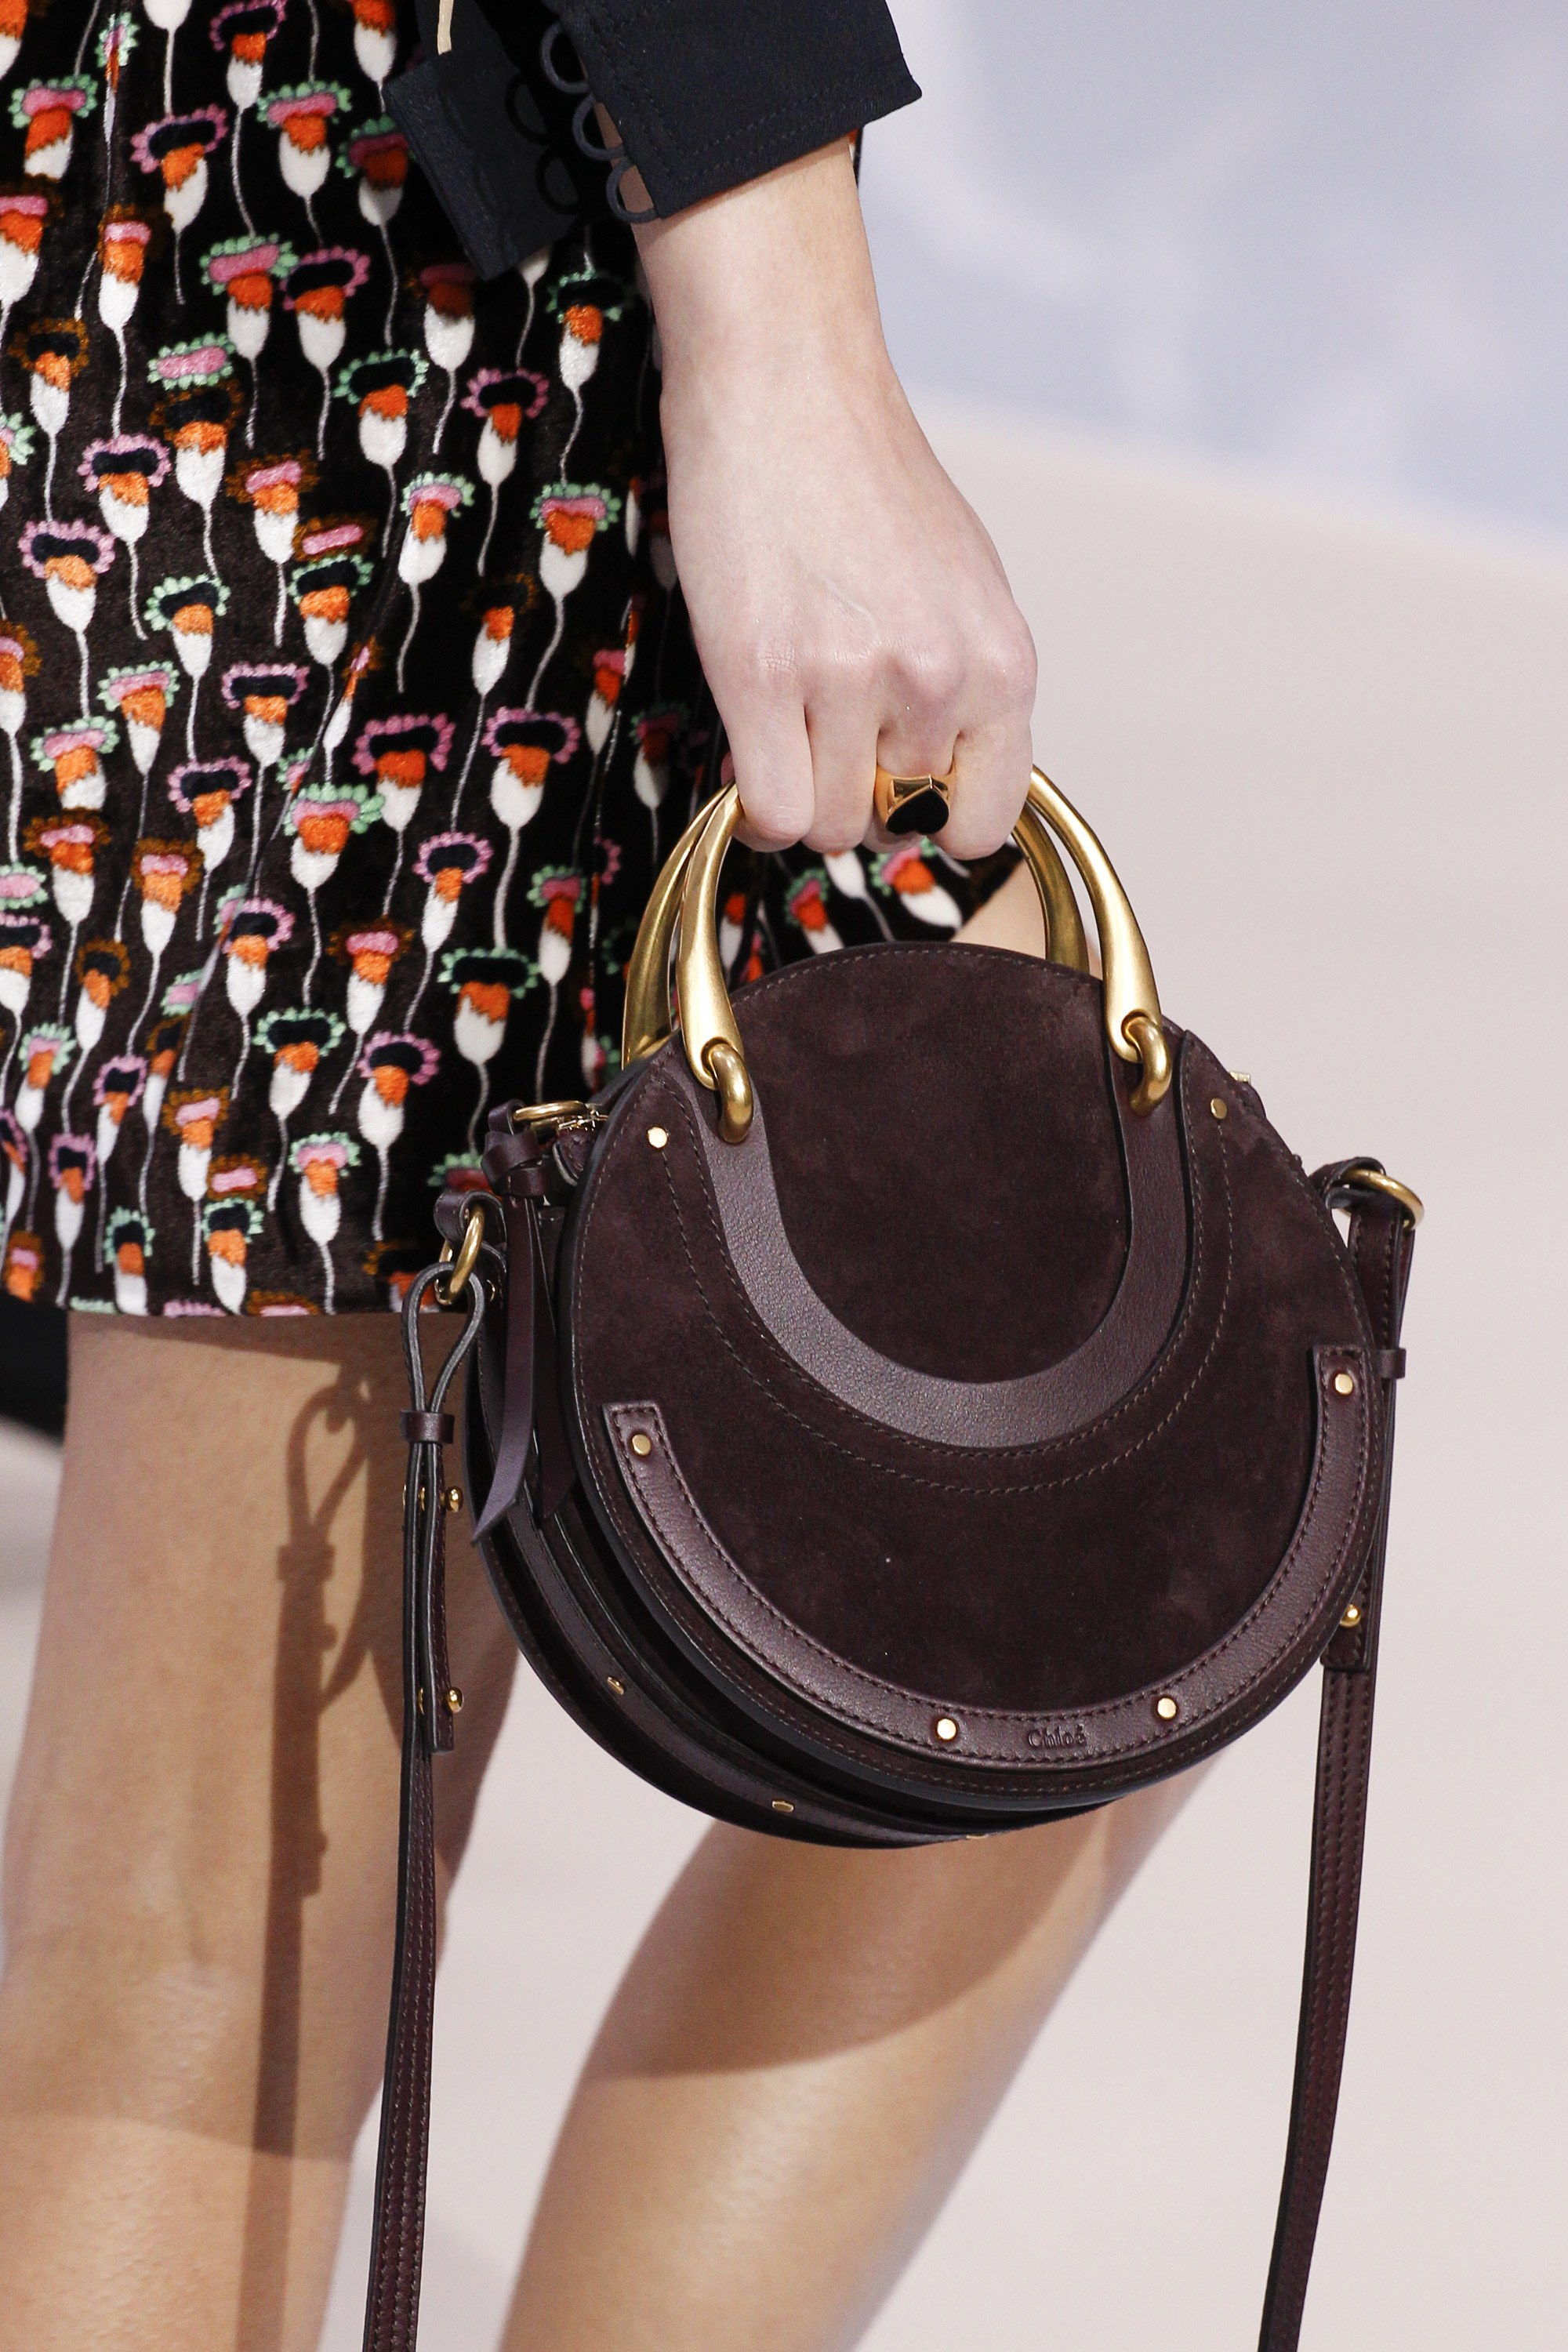 chloe fallwinter 2017 runway bag collection spotted fashion